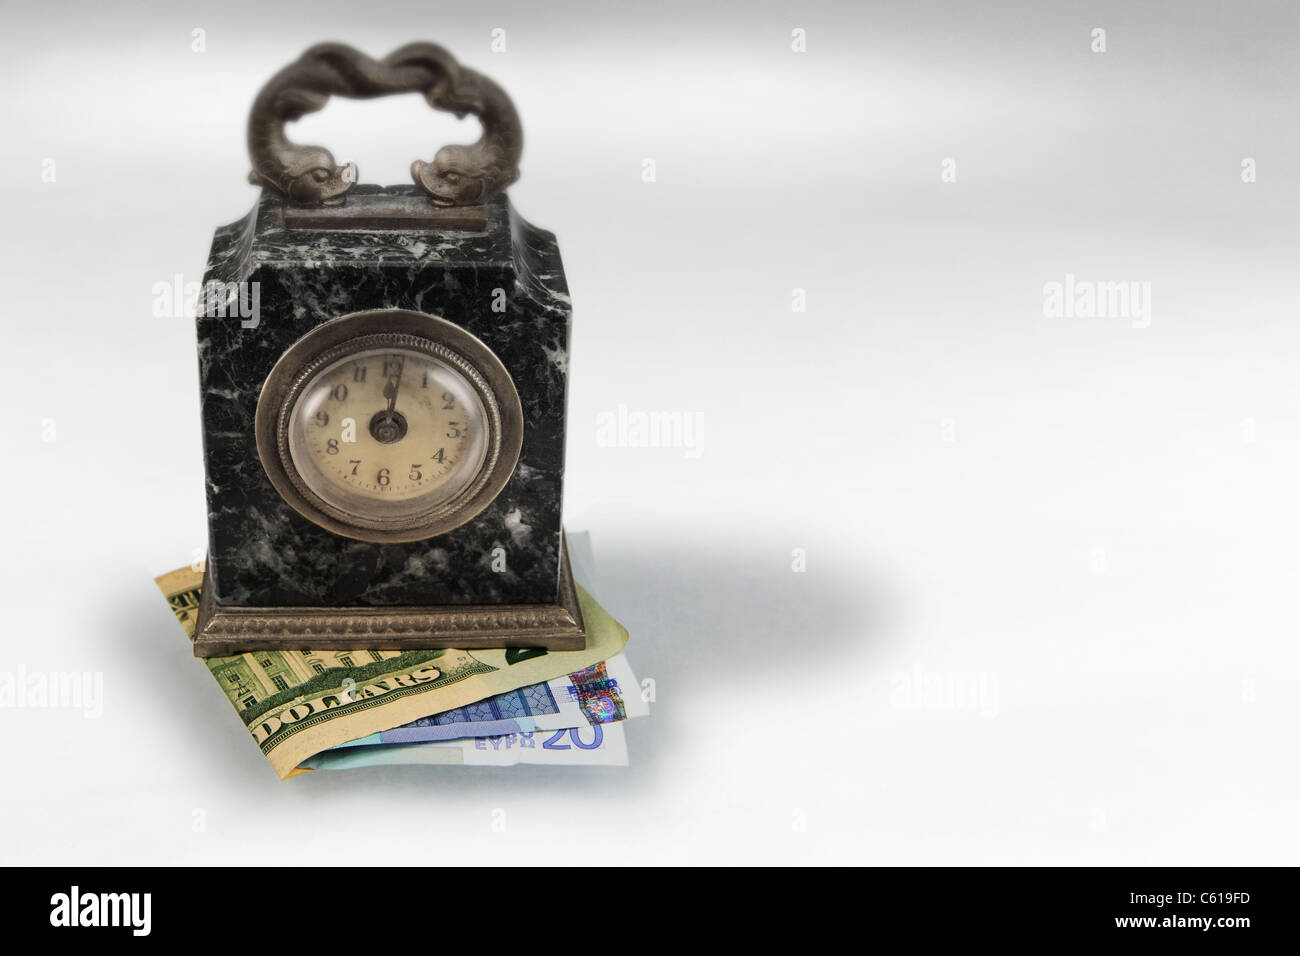 Euro Clock Stockfotos & Euro Clock Bilder - Alamy